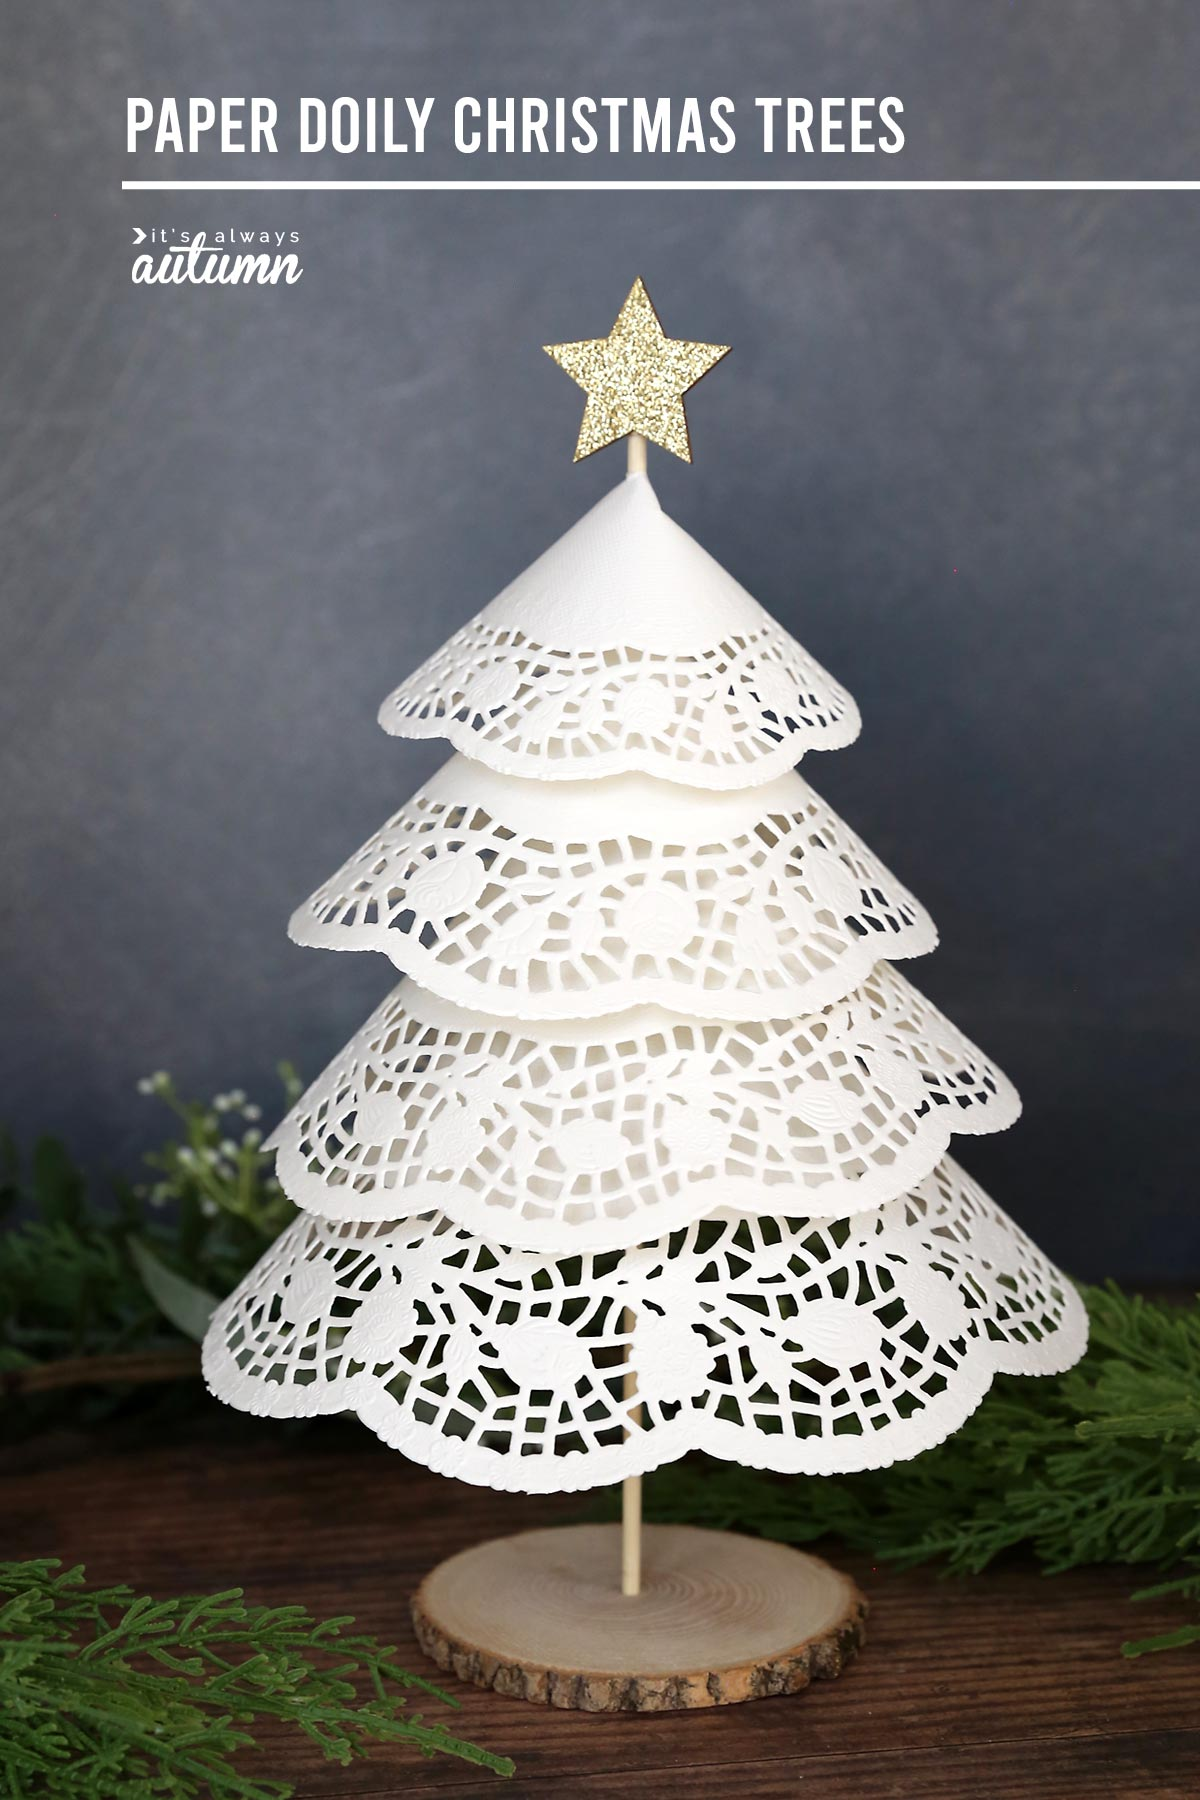 Pretty paper doily Christmas trees are made with inexpensive supplies from the Dollar Store!